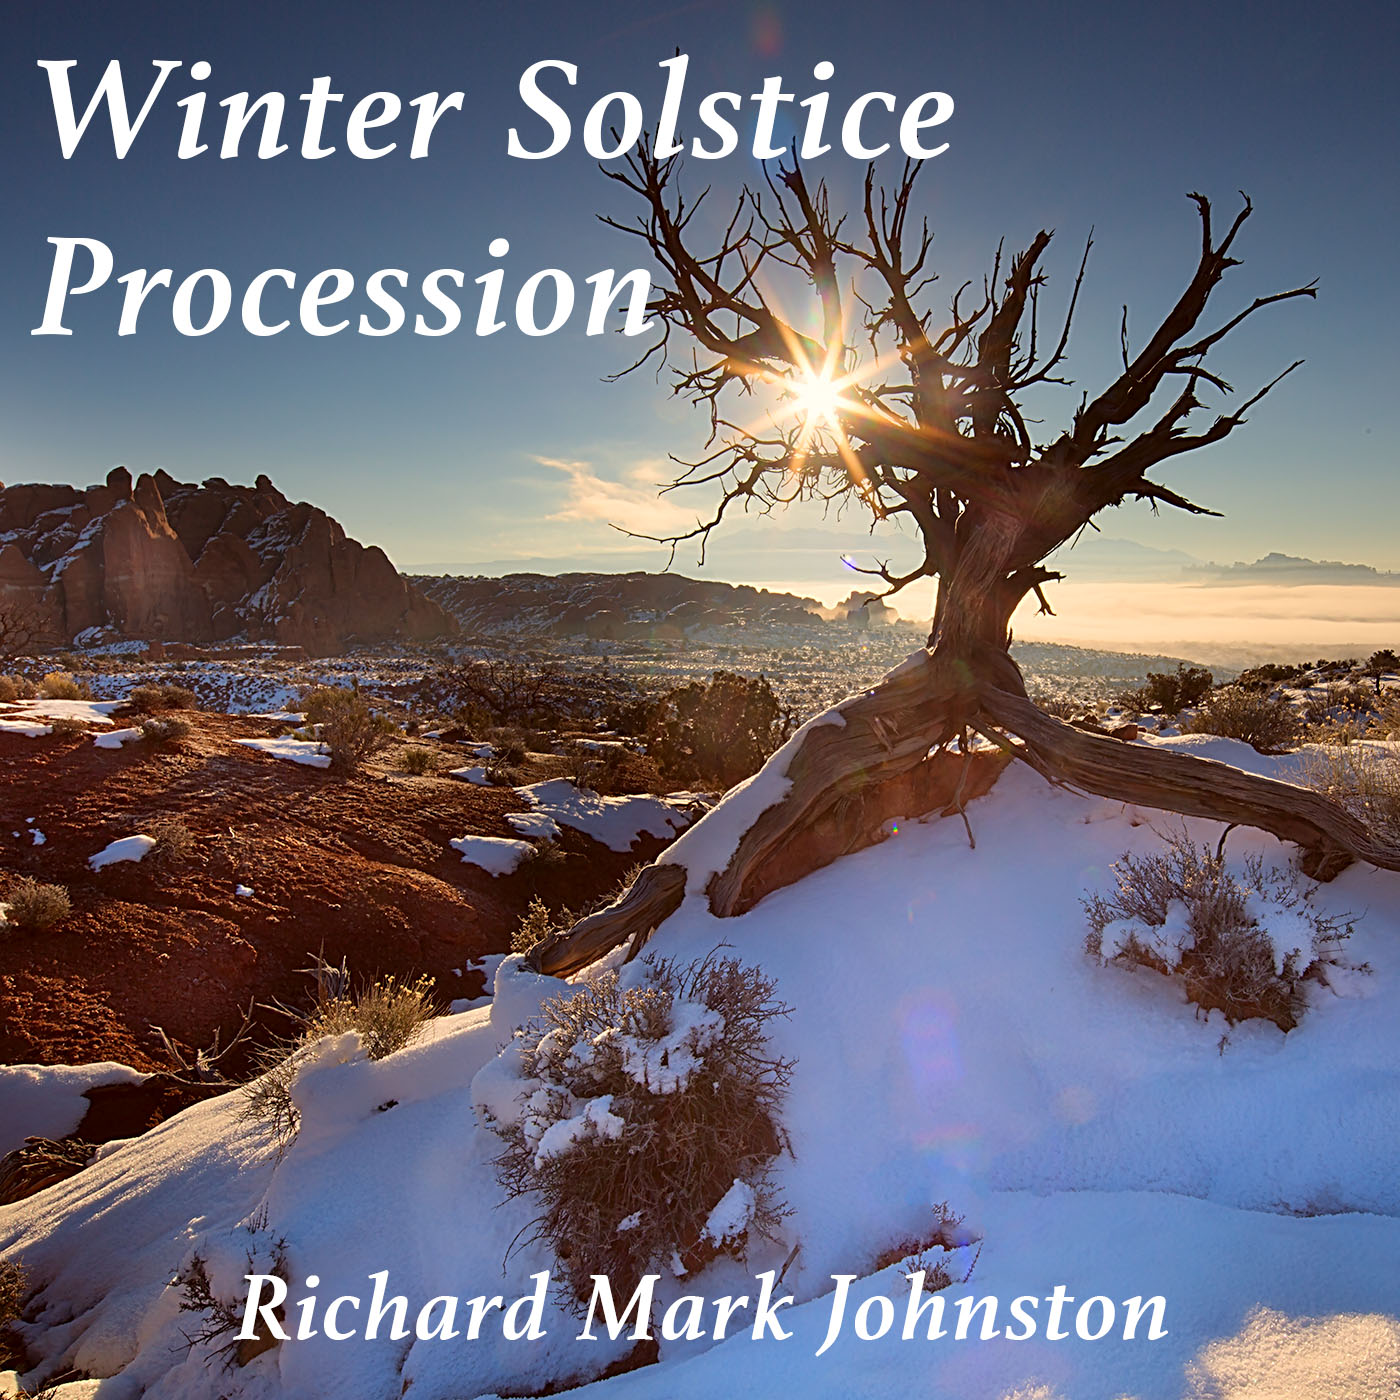 This image was taken on the day of the Winter Solstice in December 2013 in Arches National Park near Moab, Utah.